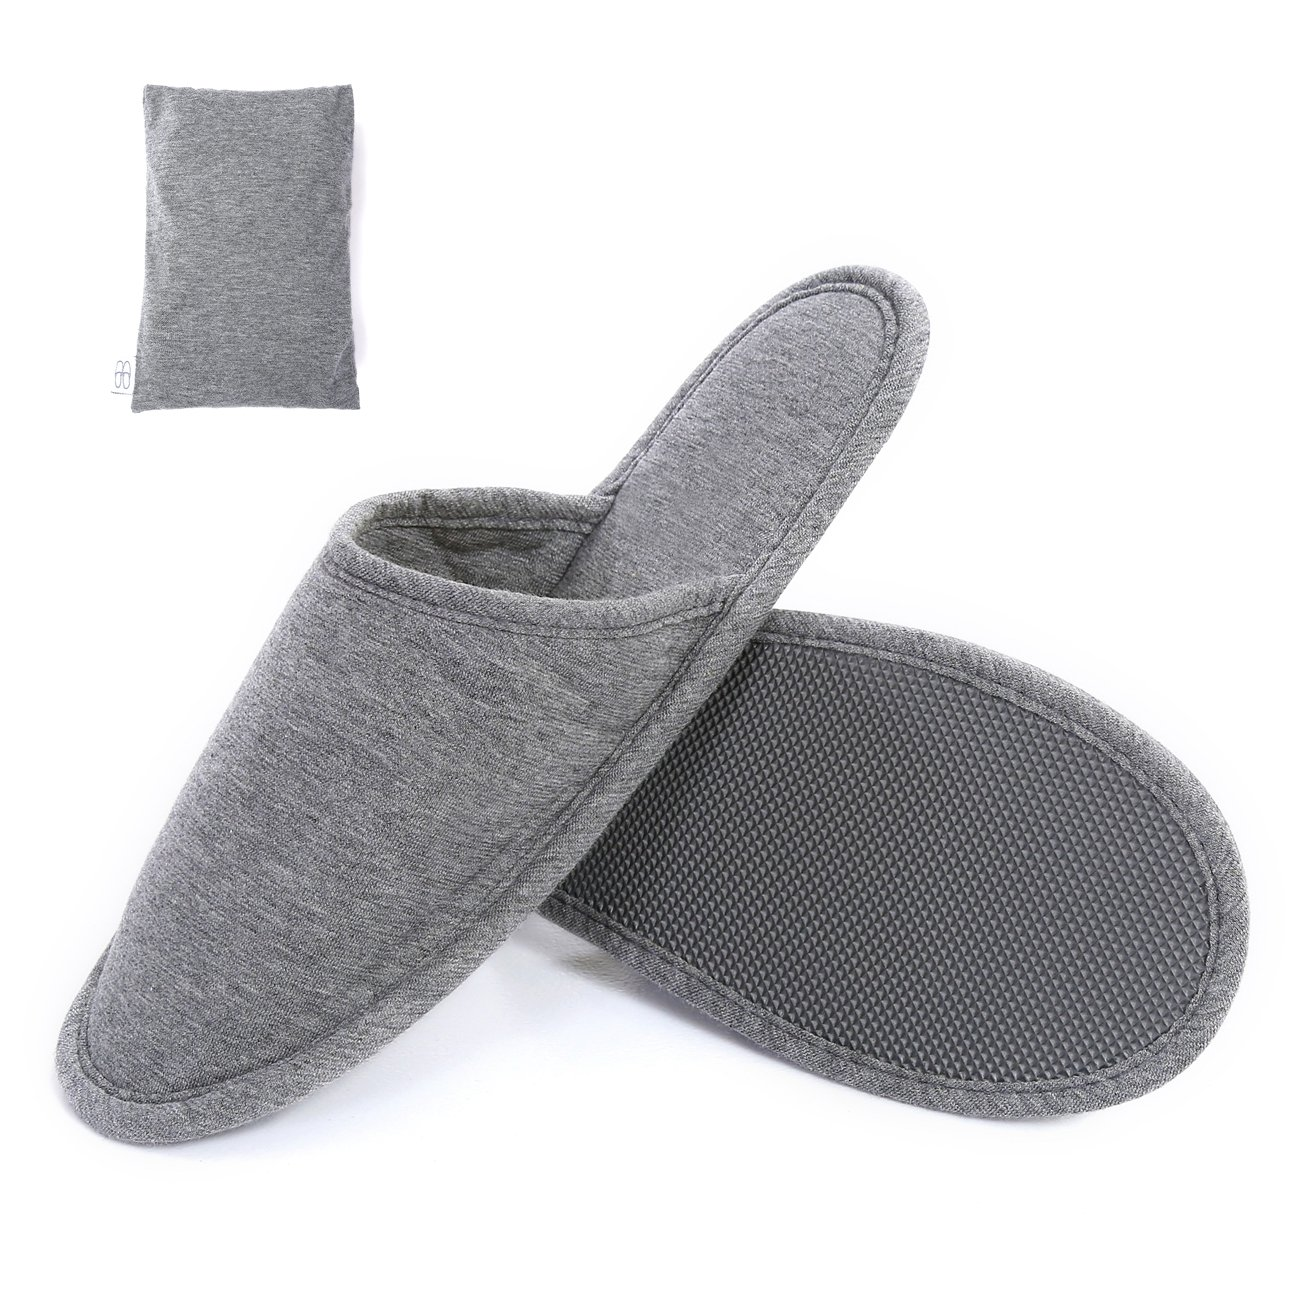 SUSYBAO Travel Slippers Super Soft Foldable Knitted Cotton House Shoes with Non-Slip Sole Breathable Lightweight Washable with Portable Pocket for Home Hotel Spa Airplane Solid Dark Gray